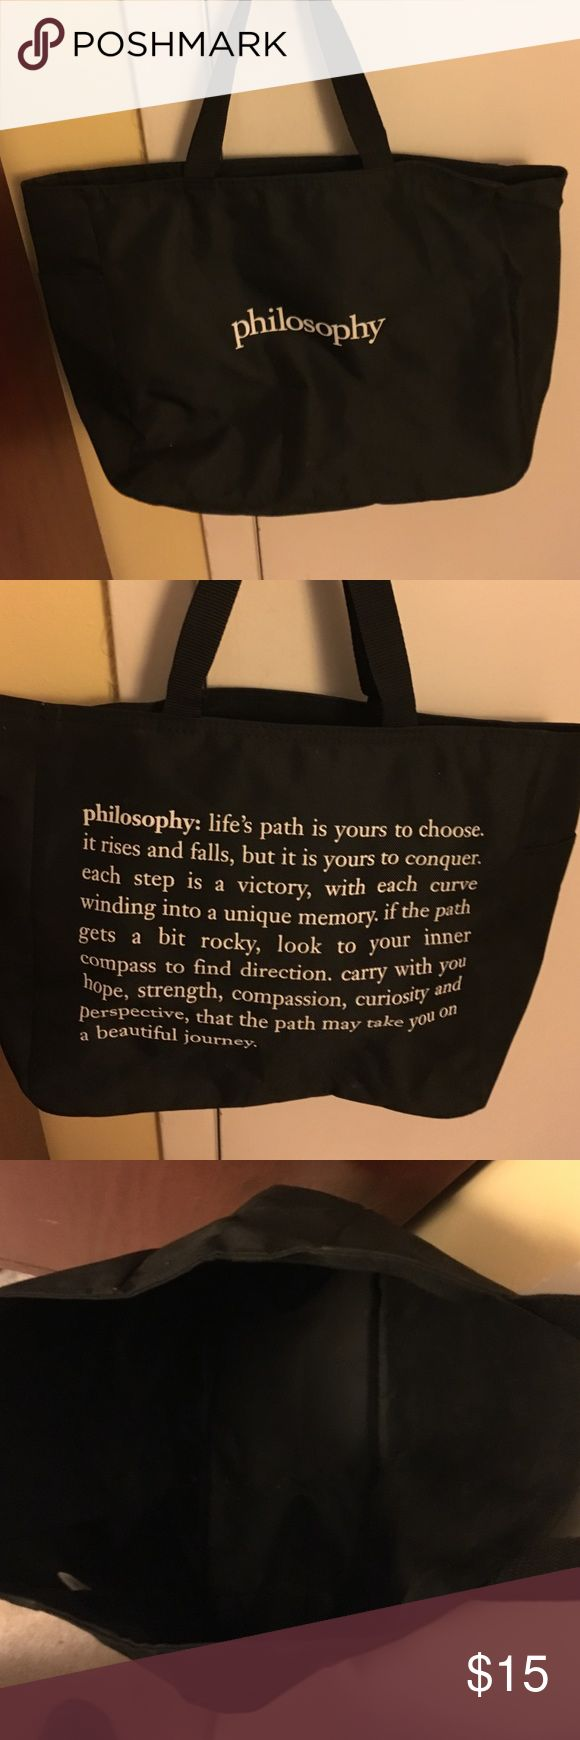 Philosophy tote bag black with white lettering Philosophy tote bag black  woven nylon canvas with white lettering says philosophy on one side and then has the definition of philosophy on the other written out.  Large opening with a small inside pocket there's also a side outside pocket. Philosophy Bags Totes